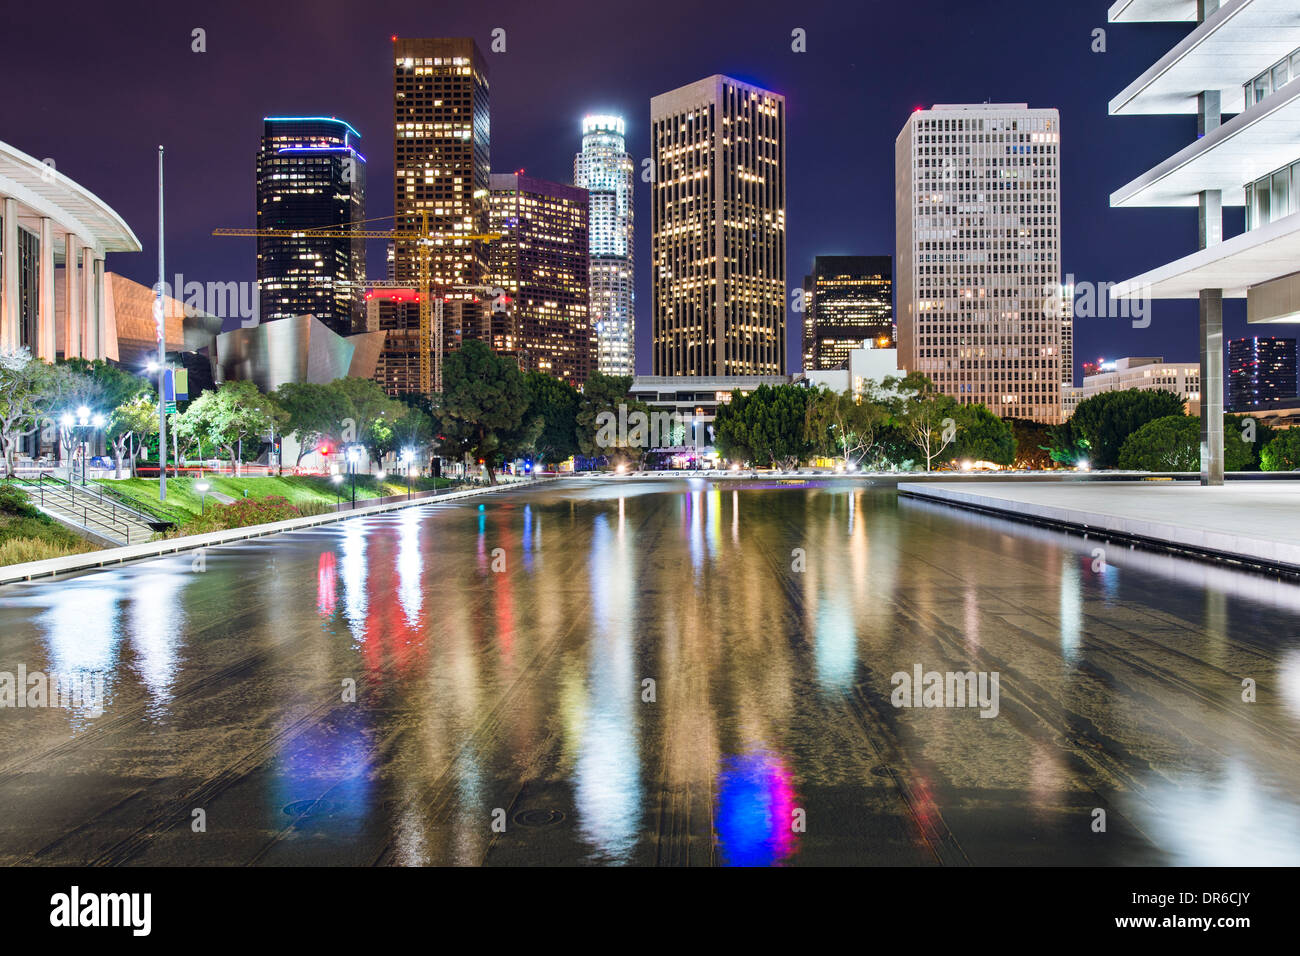 Los Angeles, California downtown skyline. - Stock Image